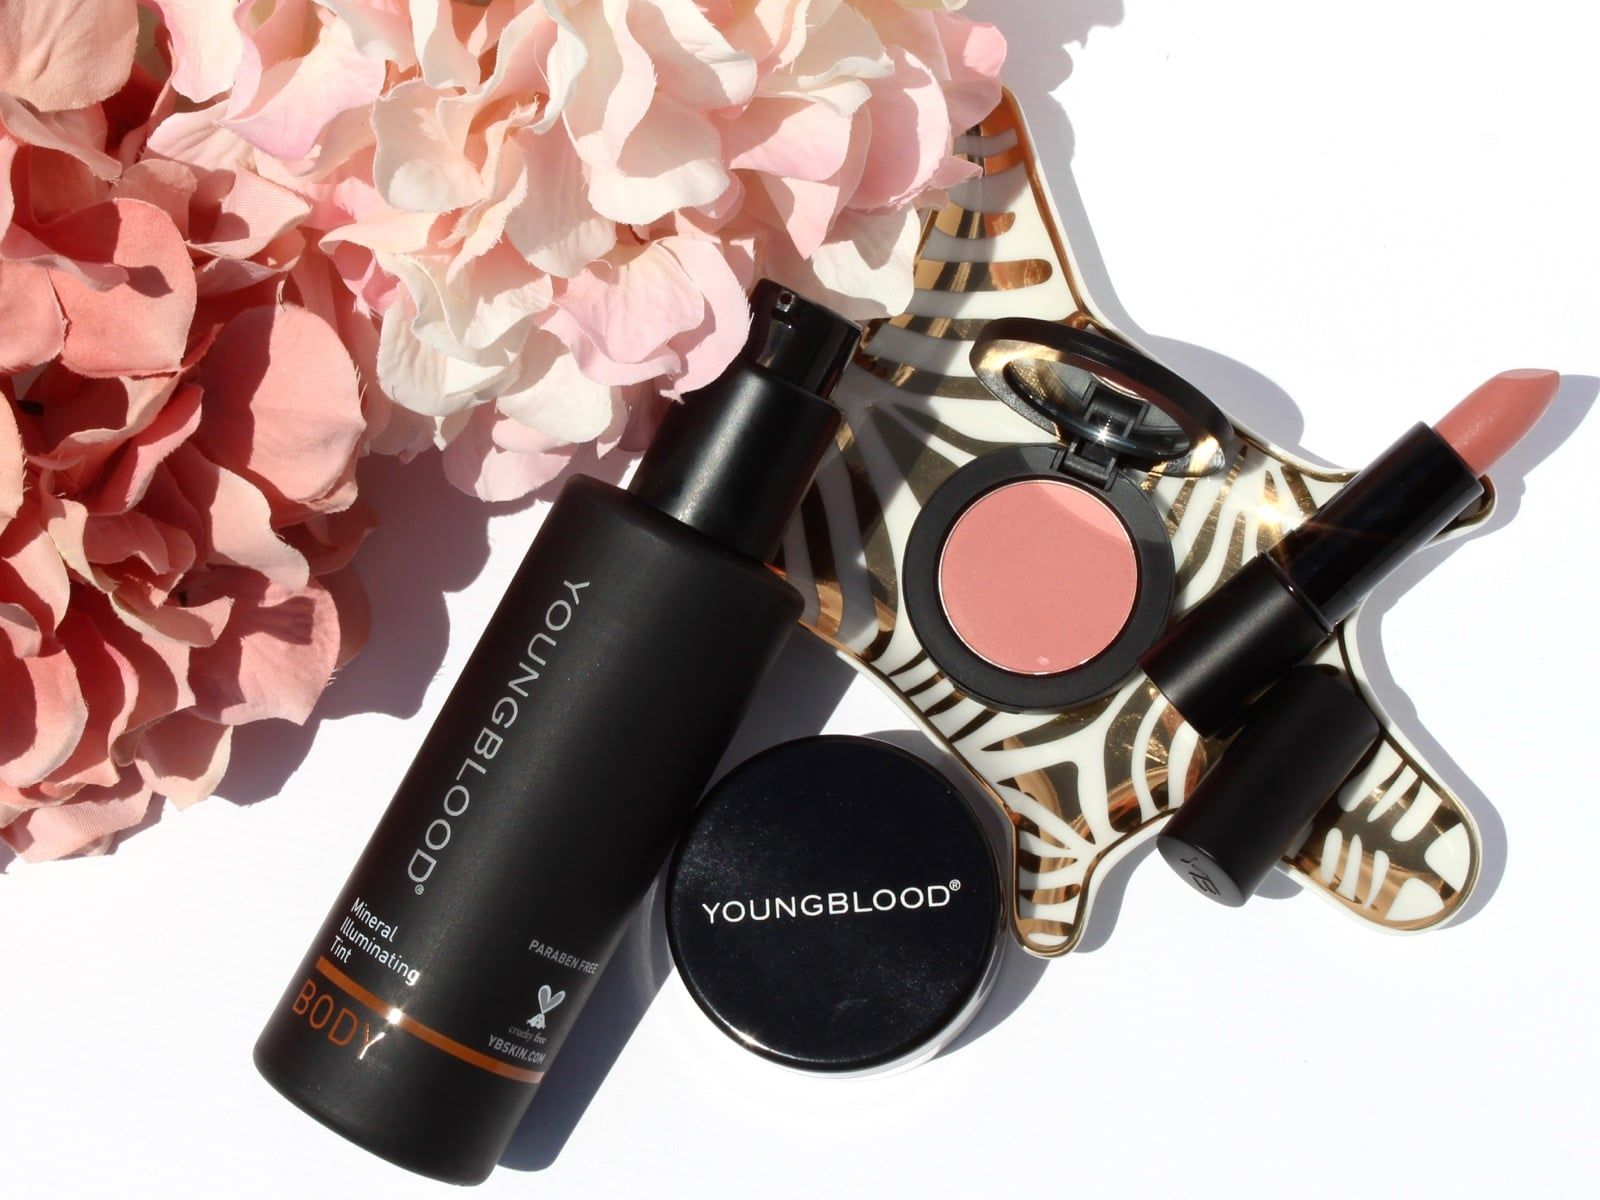 Youngblood Mineral Cosmetics Illuminating Tint Body, Lunar Dust, Blush, and Lipstick - Realizing Beauty